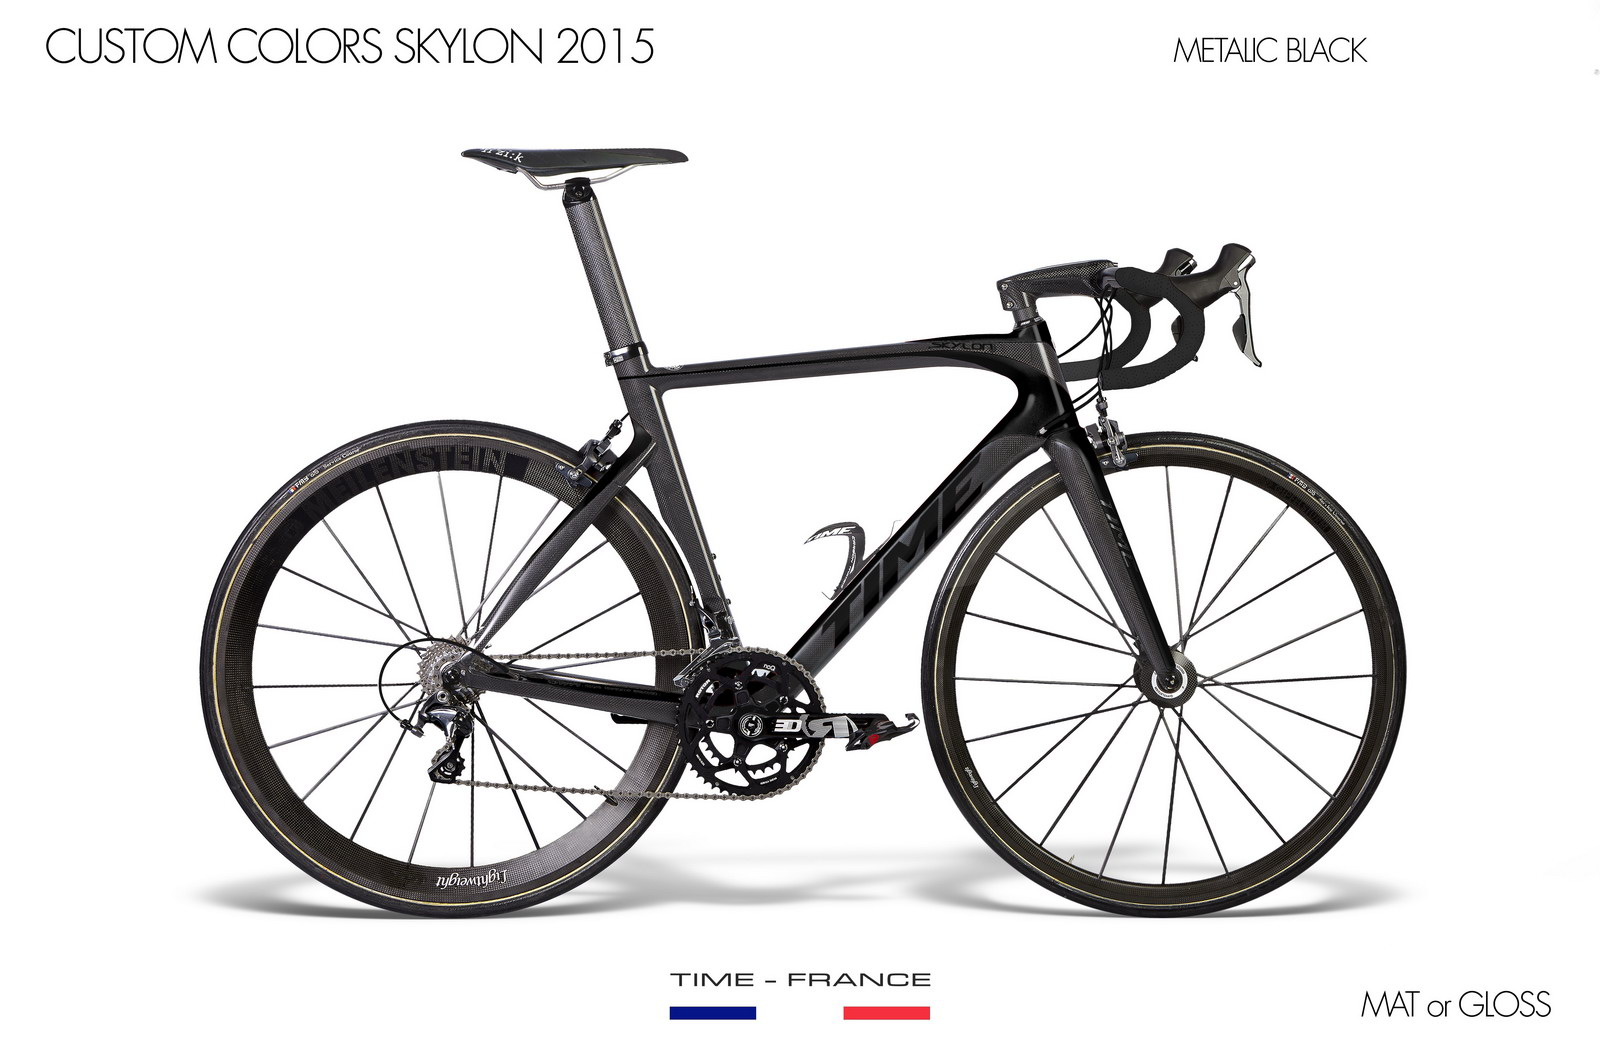 Skylon metalic black